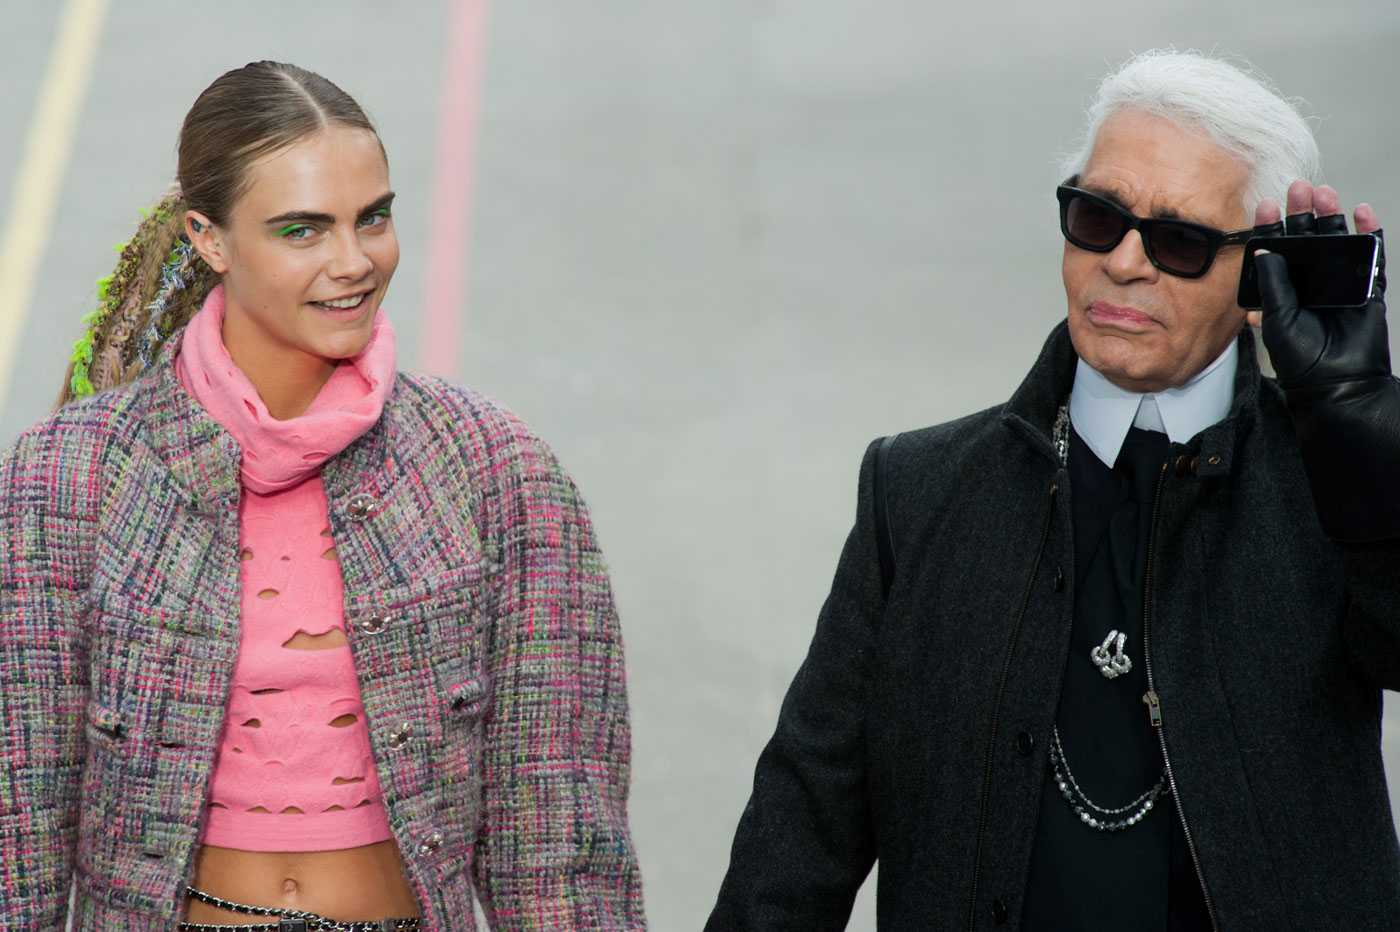 Chanel show Fall/Winter 2014 collection during Paris Fashion Week